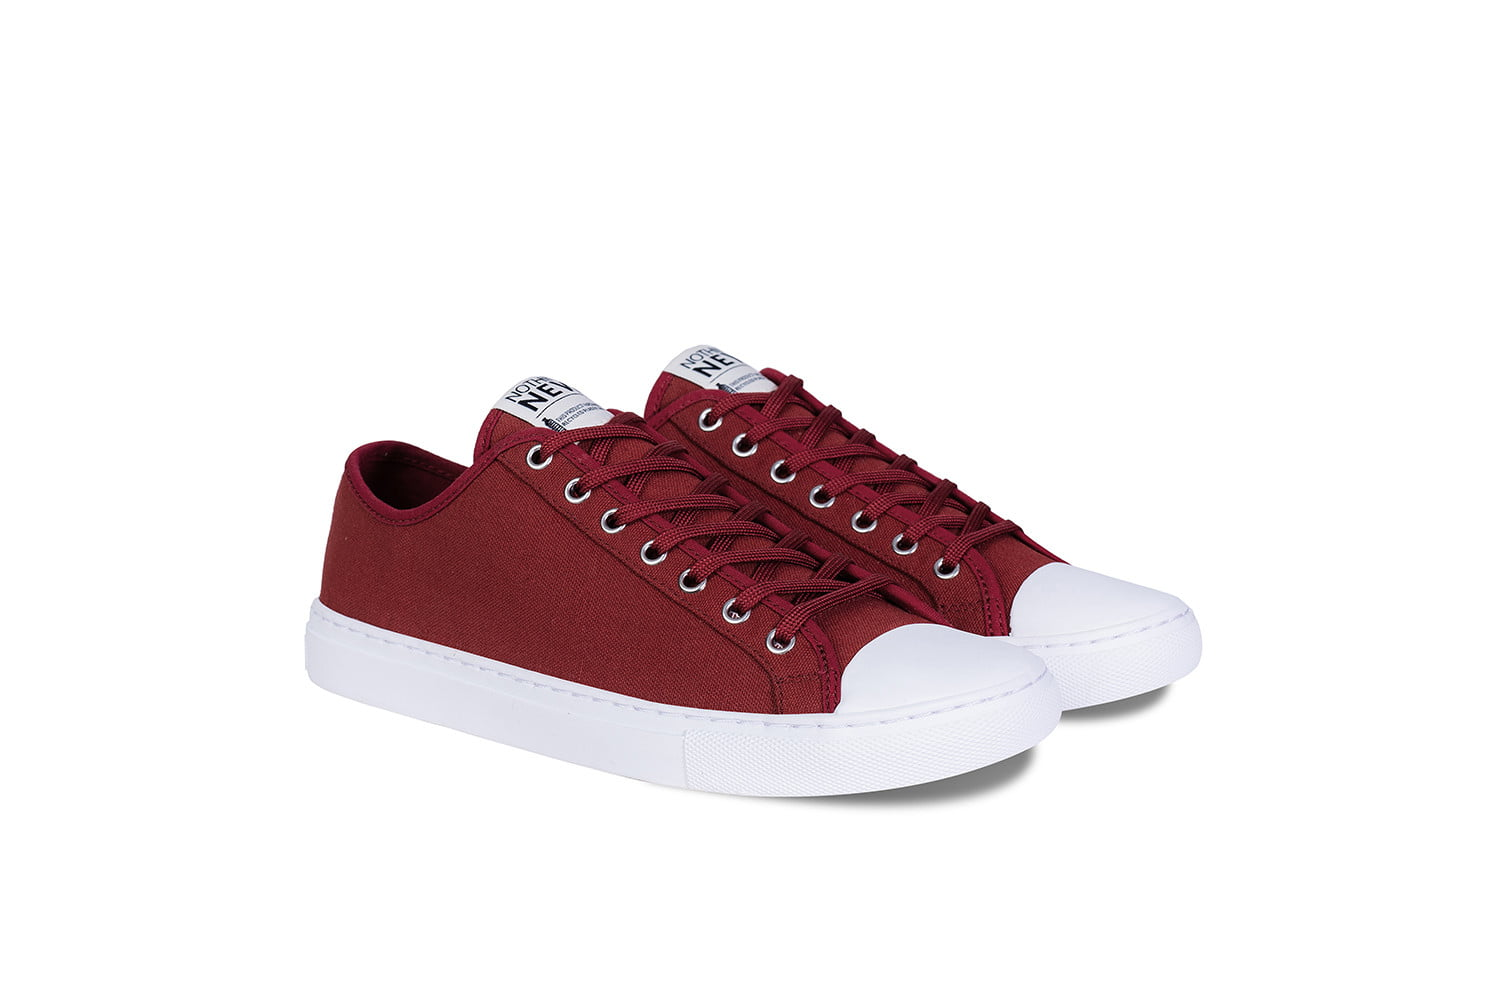 nothing new sustainable sneakers shoes red low top